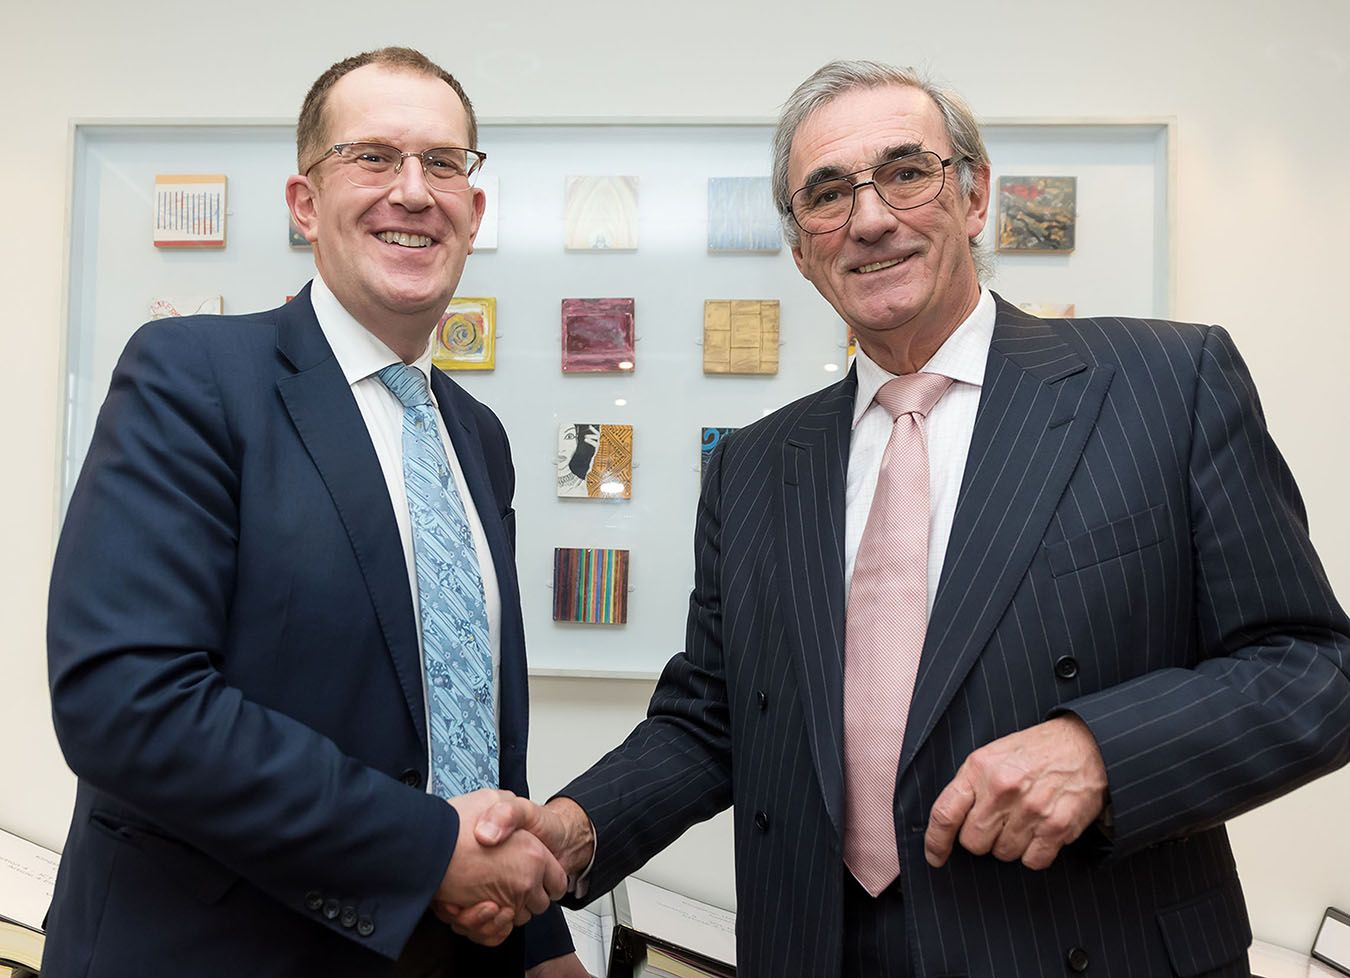 Photo of Actiing Vice-Chancellor Steven Spier and Board Chairman David Edmonds shaking hands.